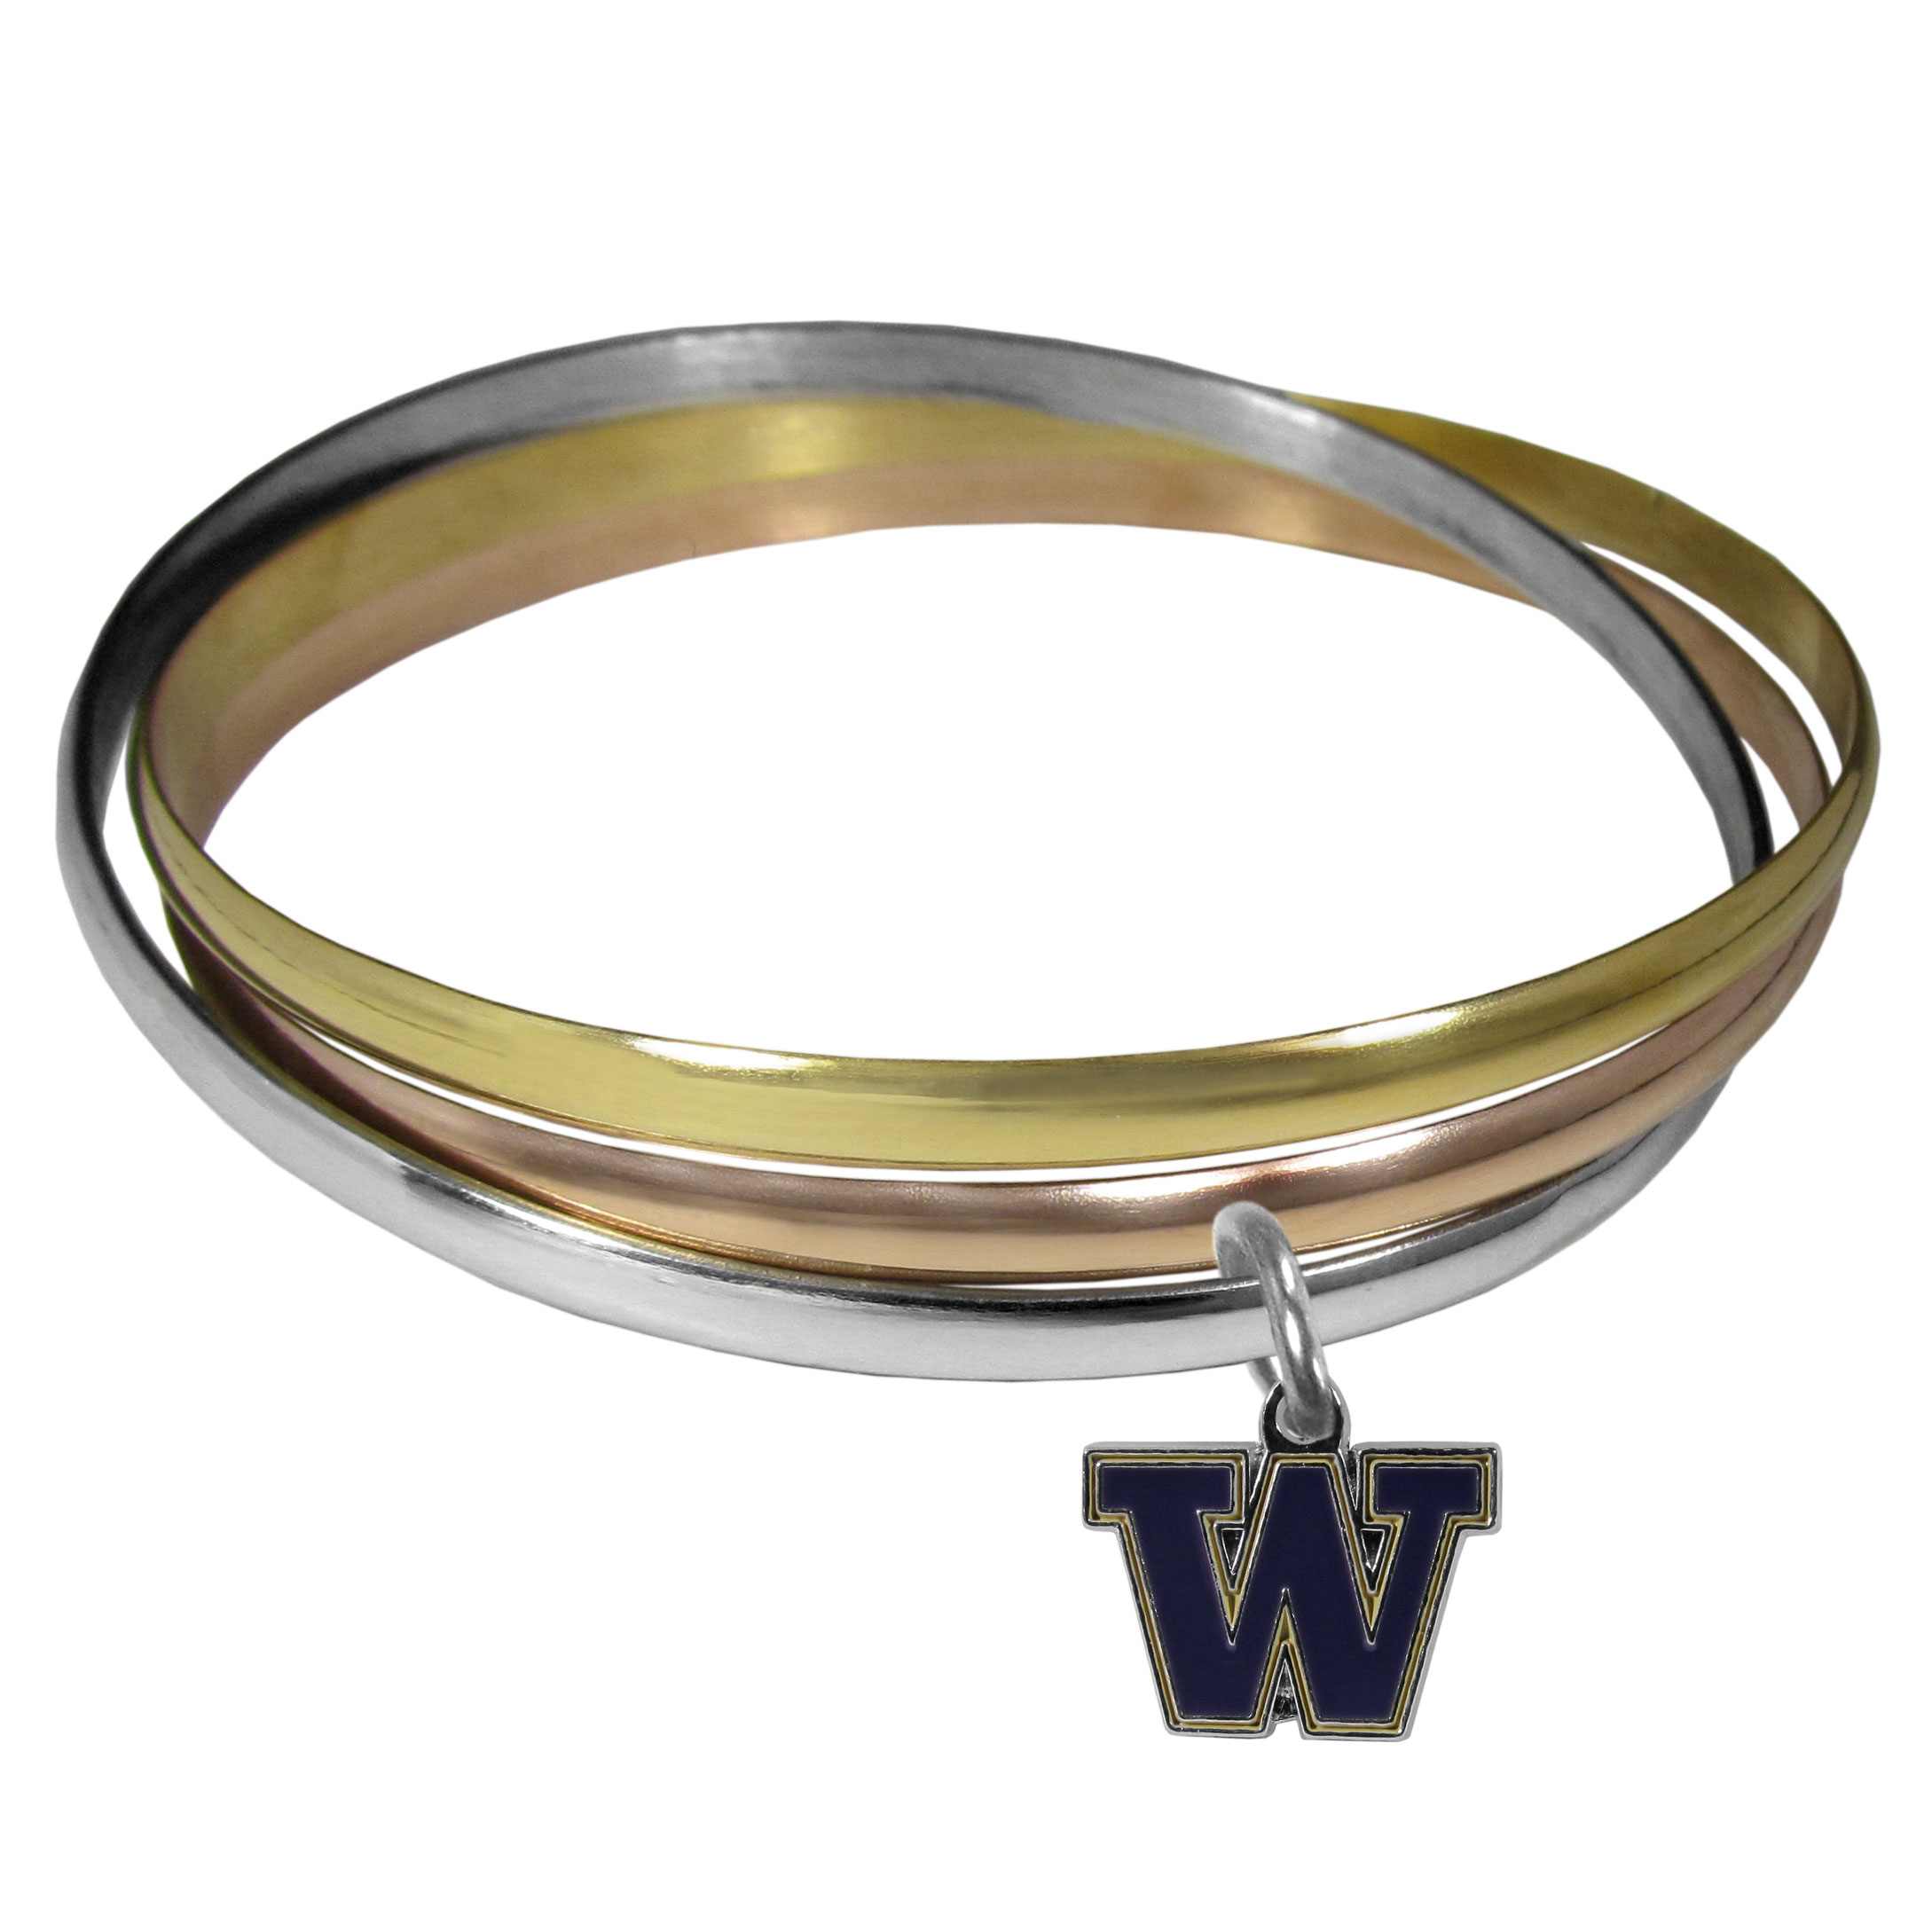 Washington Huskies Tri-color Bangle Bracelet - These beautiful bangles come in a interlocking style and feature a fully cast Washington Huskies charm with enameled team colors. The bracelet has a silver toned bangle, gold tone bangle and brass toned bangle.